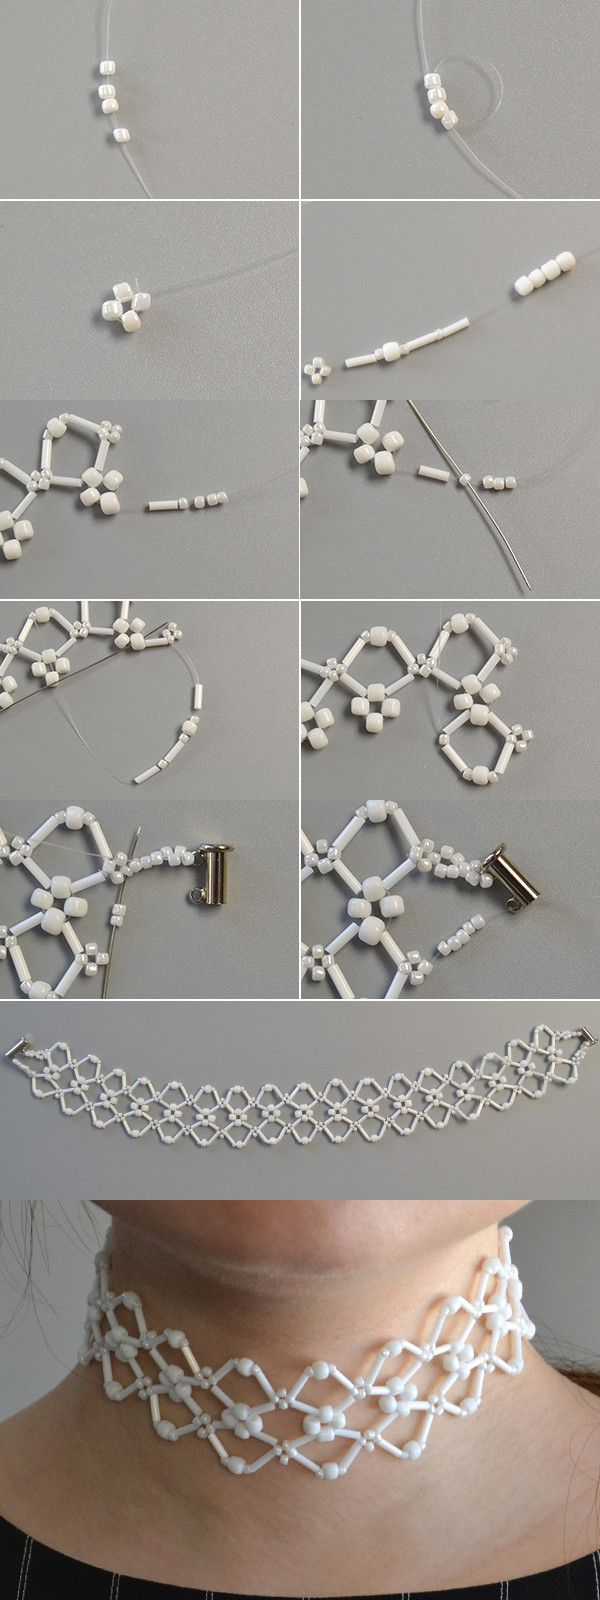 white beads necklace, LC.Pandahall.com will share us the tutorial soon. #pandahall